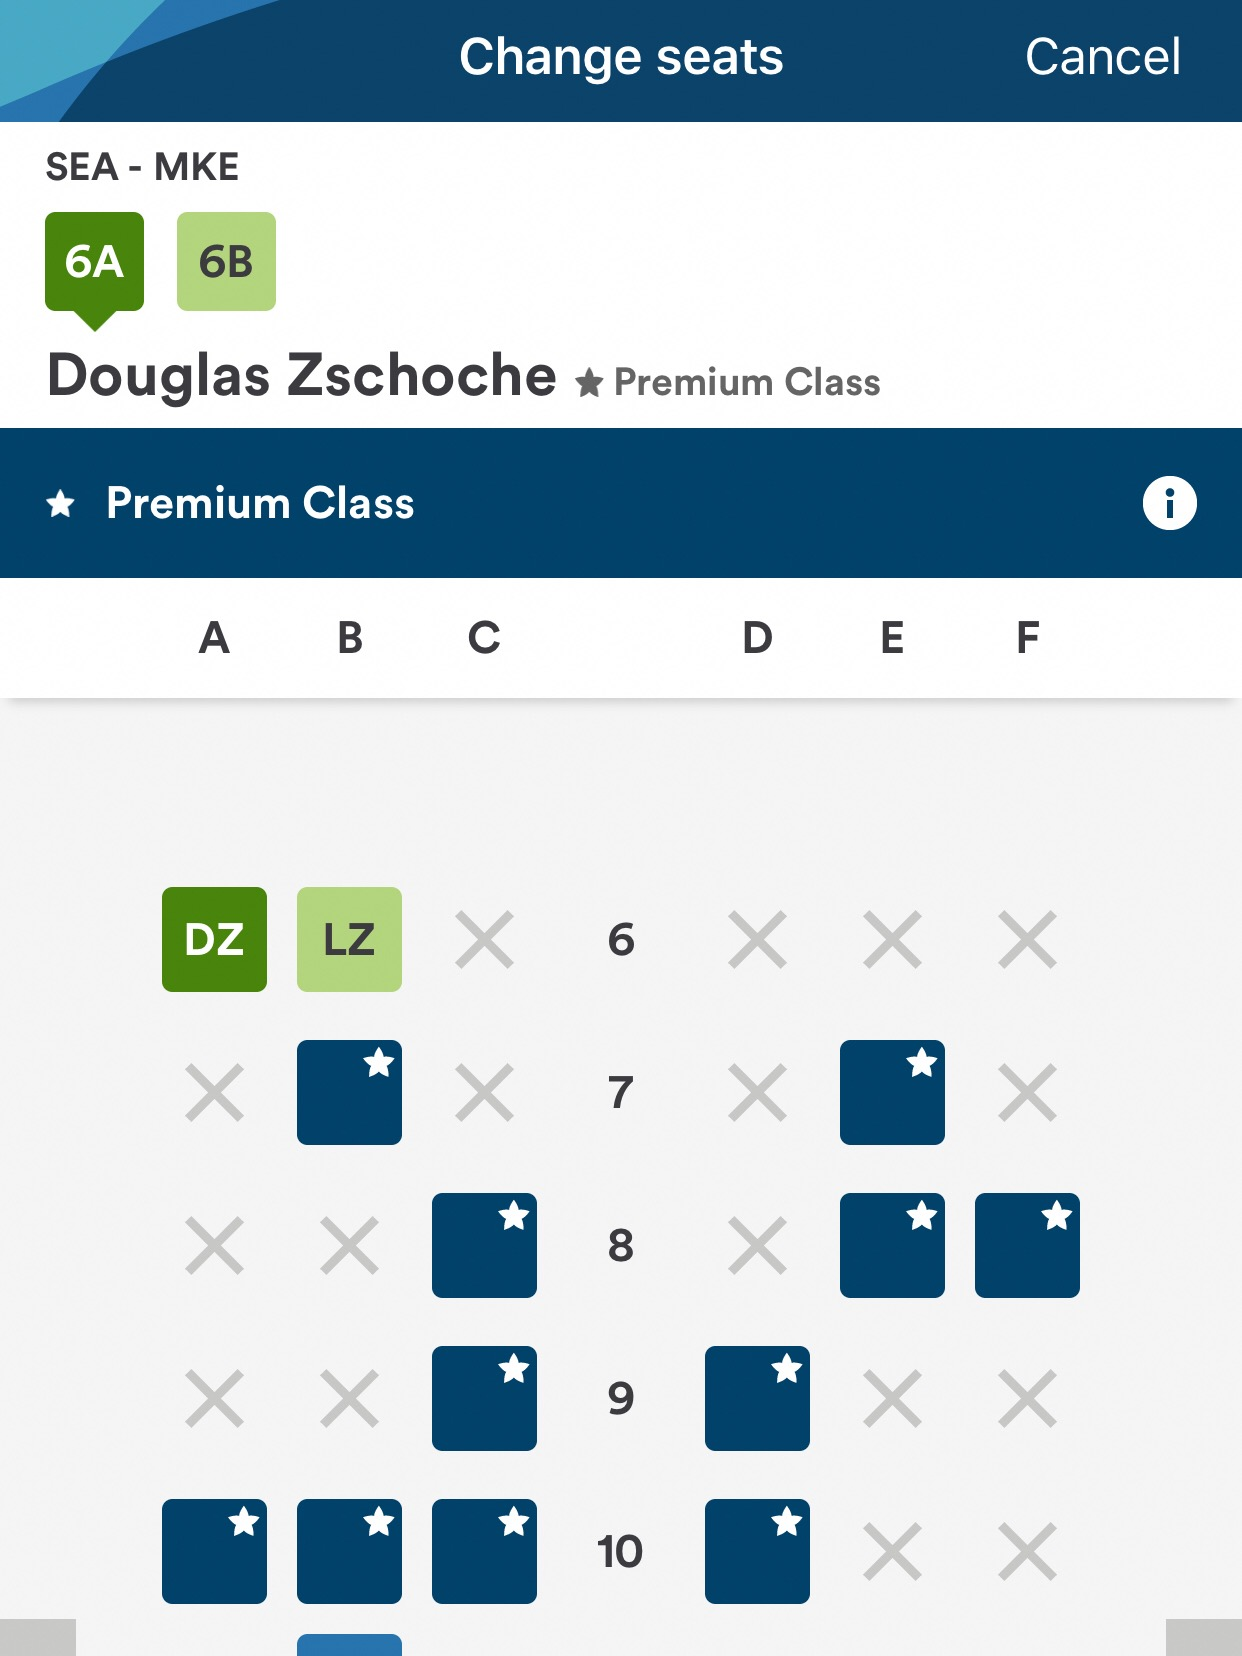 I was able to snag the seats immediately behind First Class.